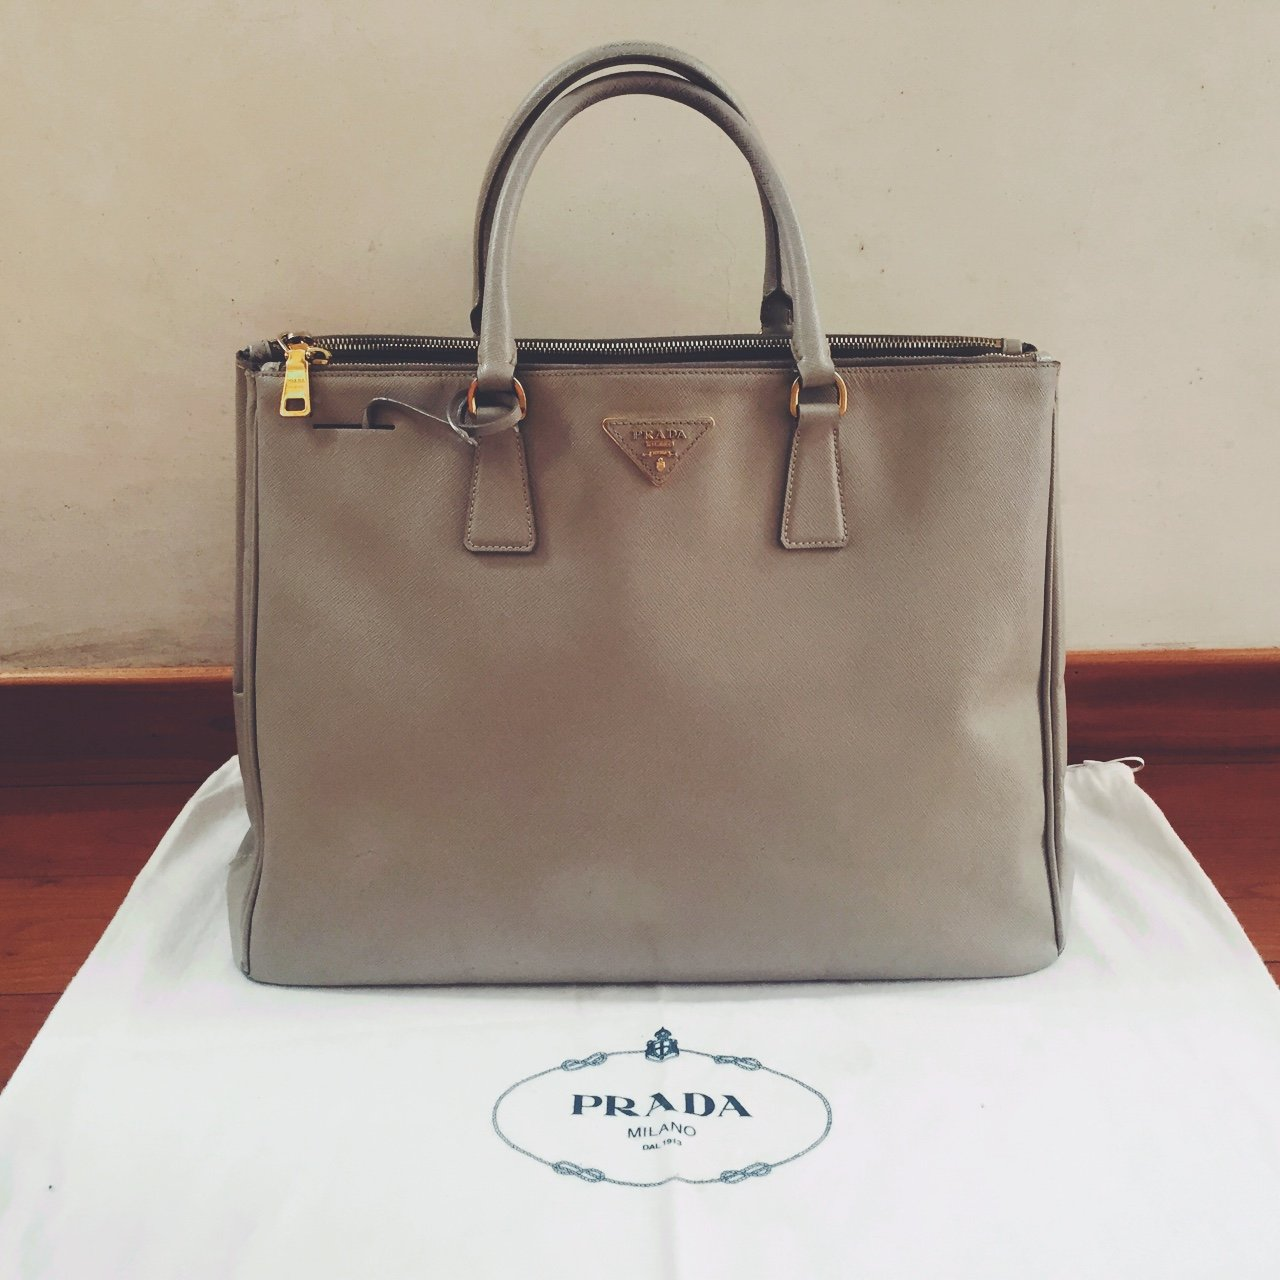 1f366b337203 ... inexpensive prada saffiano lux leather executive tote baglarge size x  depop 9ffcc cec0b